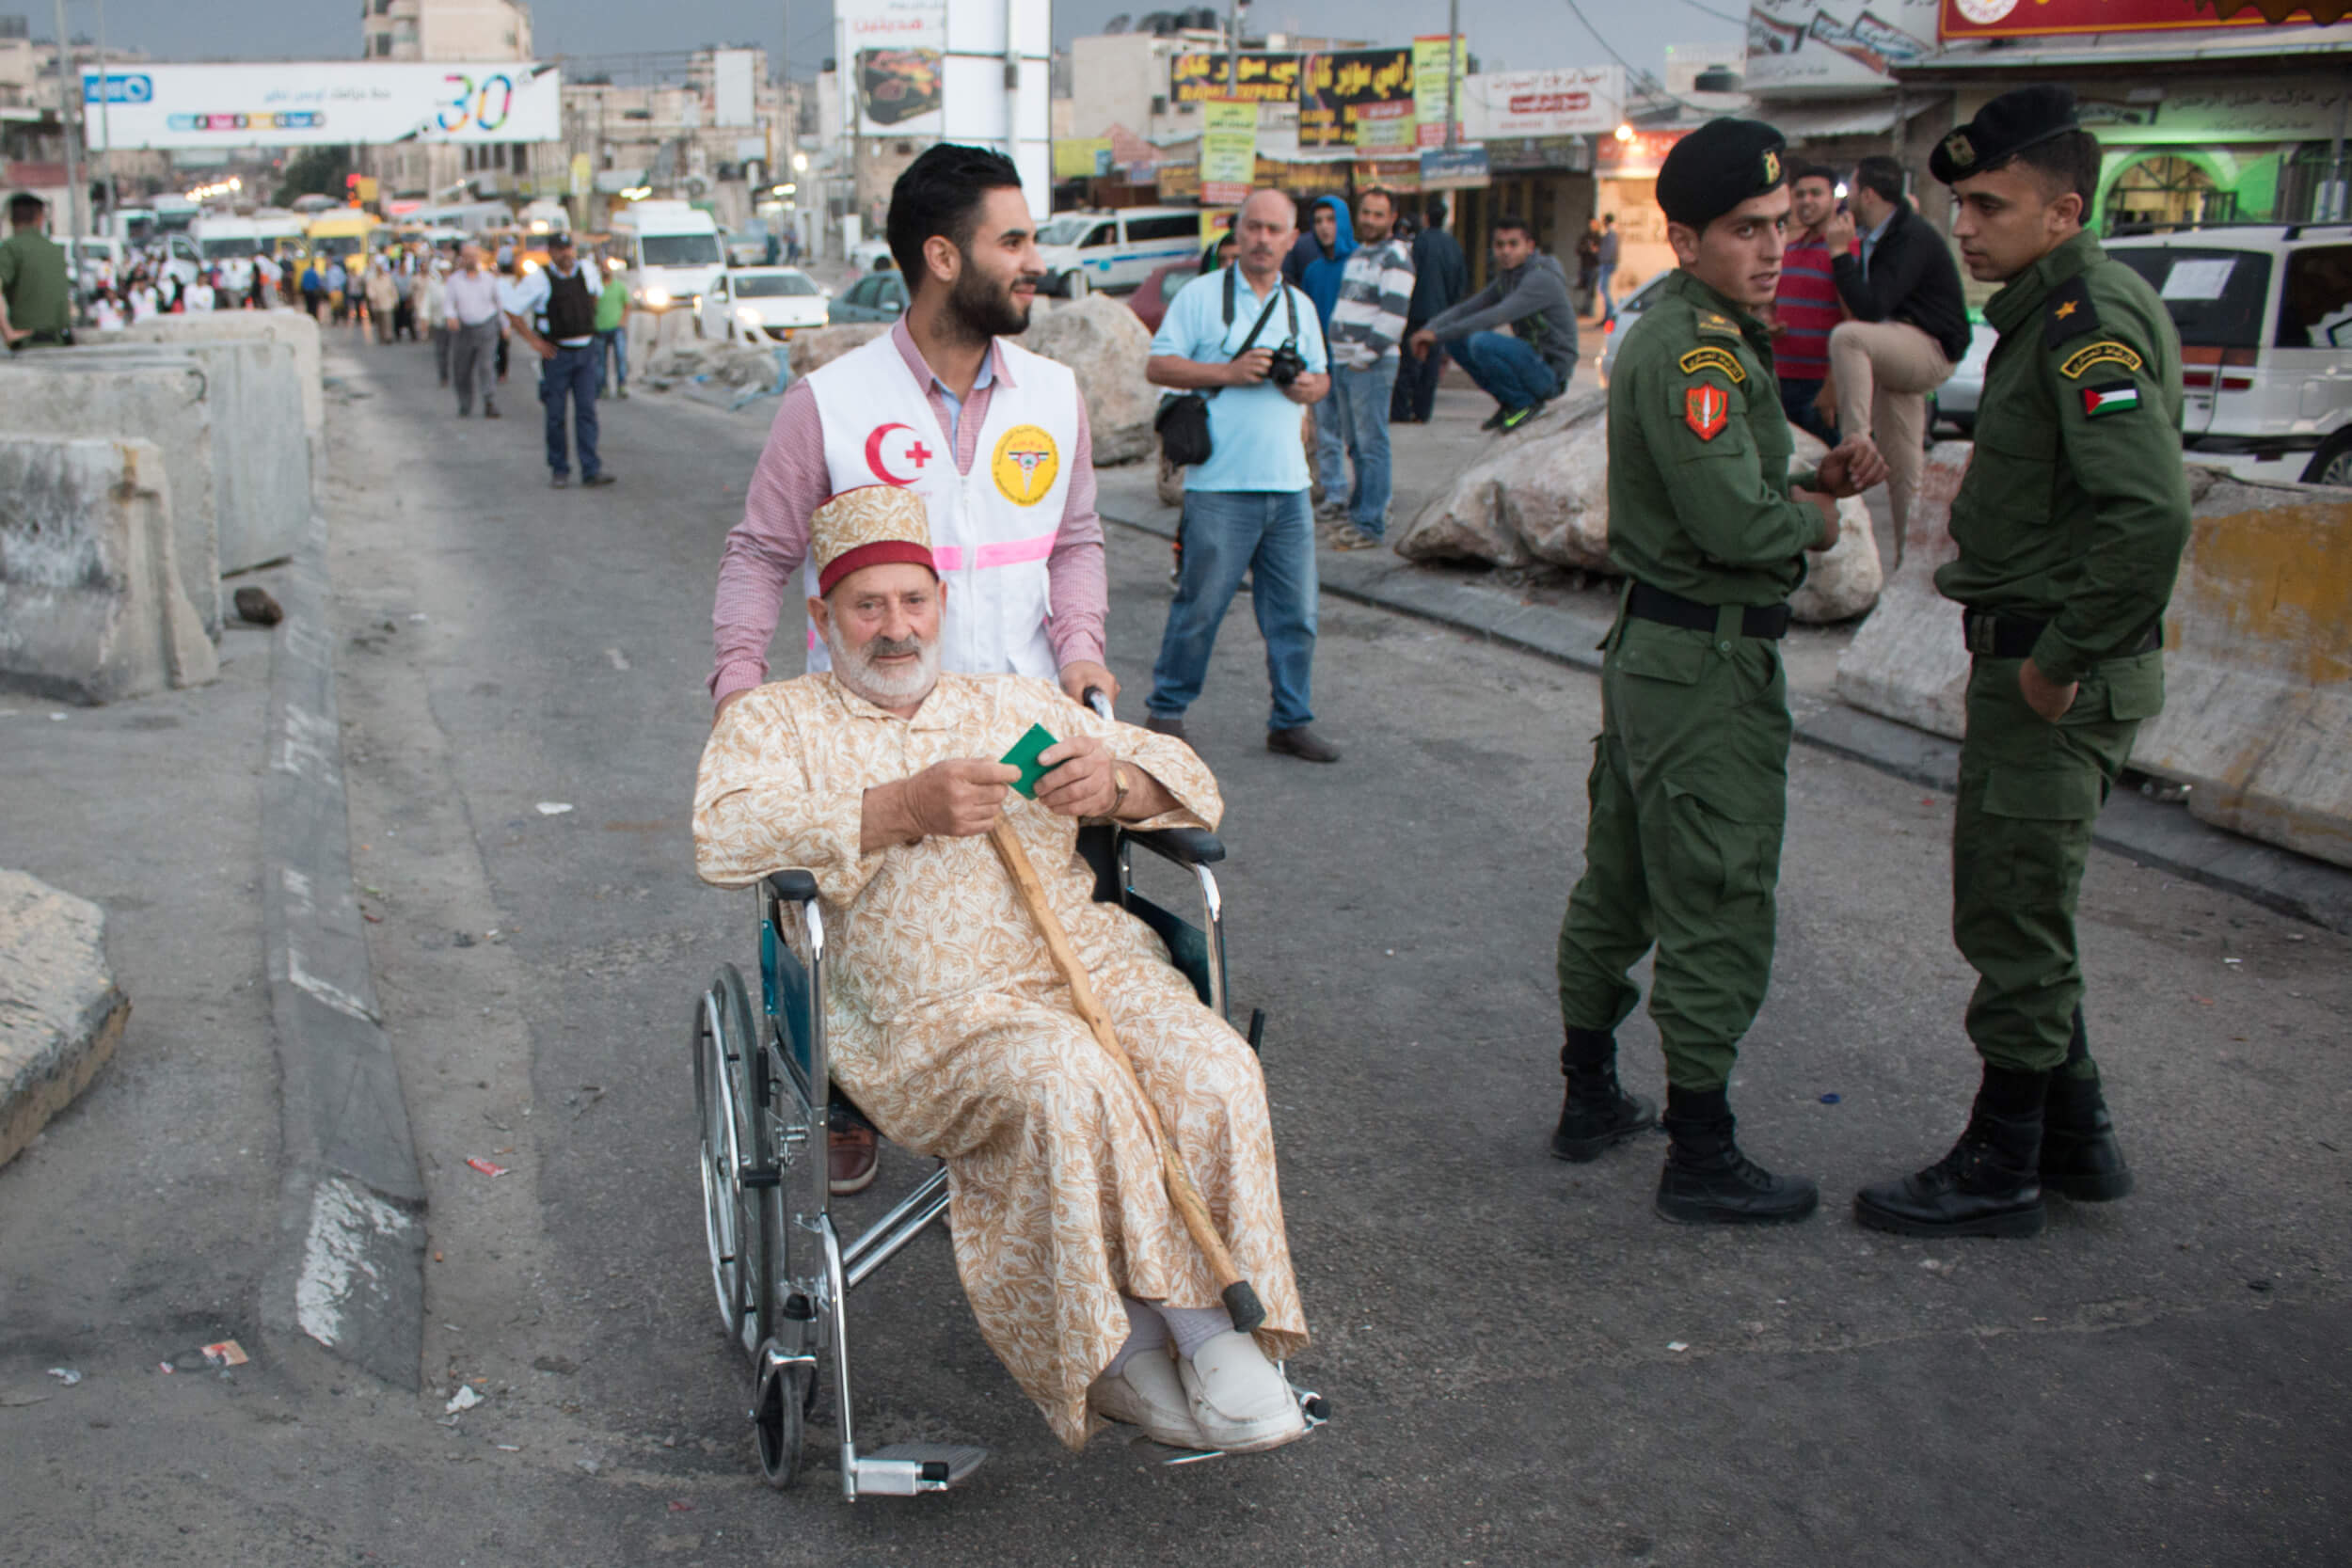 A PMRS (Palestine Medical Relief Society) volunteer helps a man from Nablus on his way into Qalandia checkpoint beside Palestinian District Coordination soldiers.  PMRS and the Palestinian Red Crescent Society maintain a volunteer presence every Friday during Ramadan at Qalandia checkpoint.  The Palestinian soldiers coordinate with the Israeli military to facilitate the crossing on Fridays during Ramadan. (Photo: Karam Saleem)